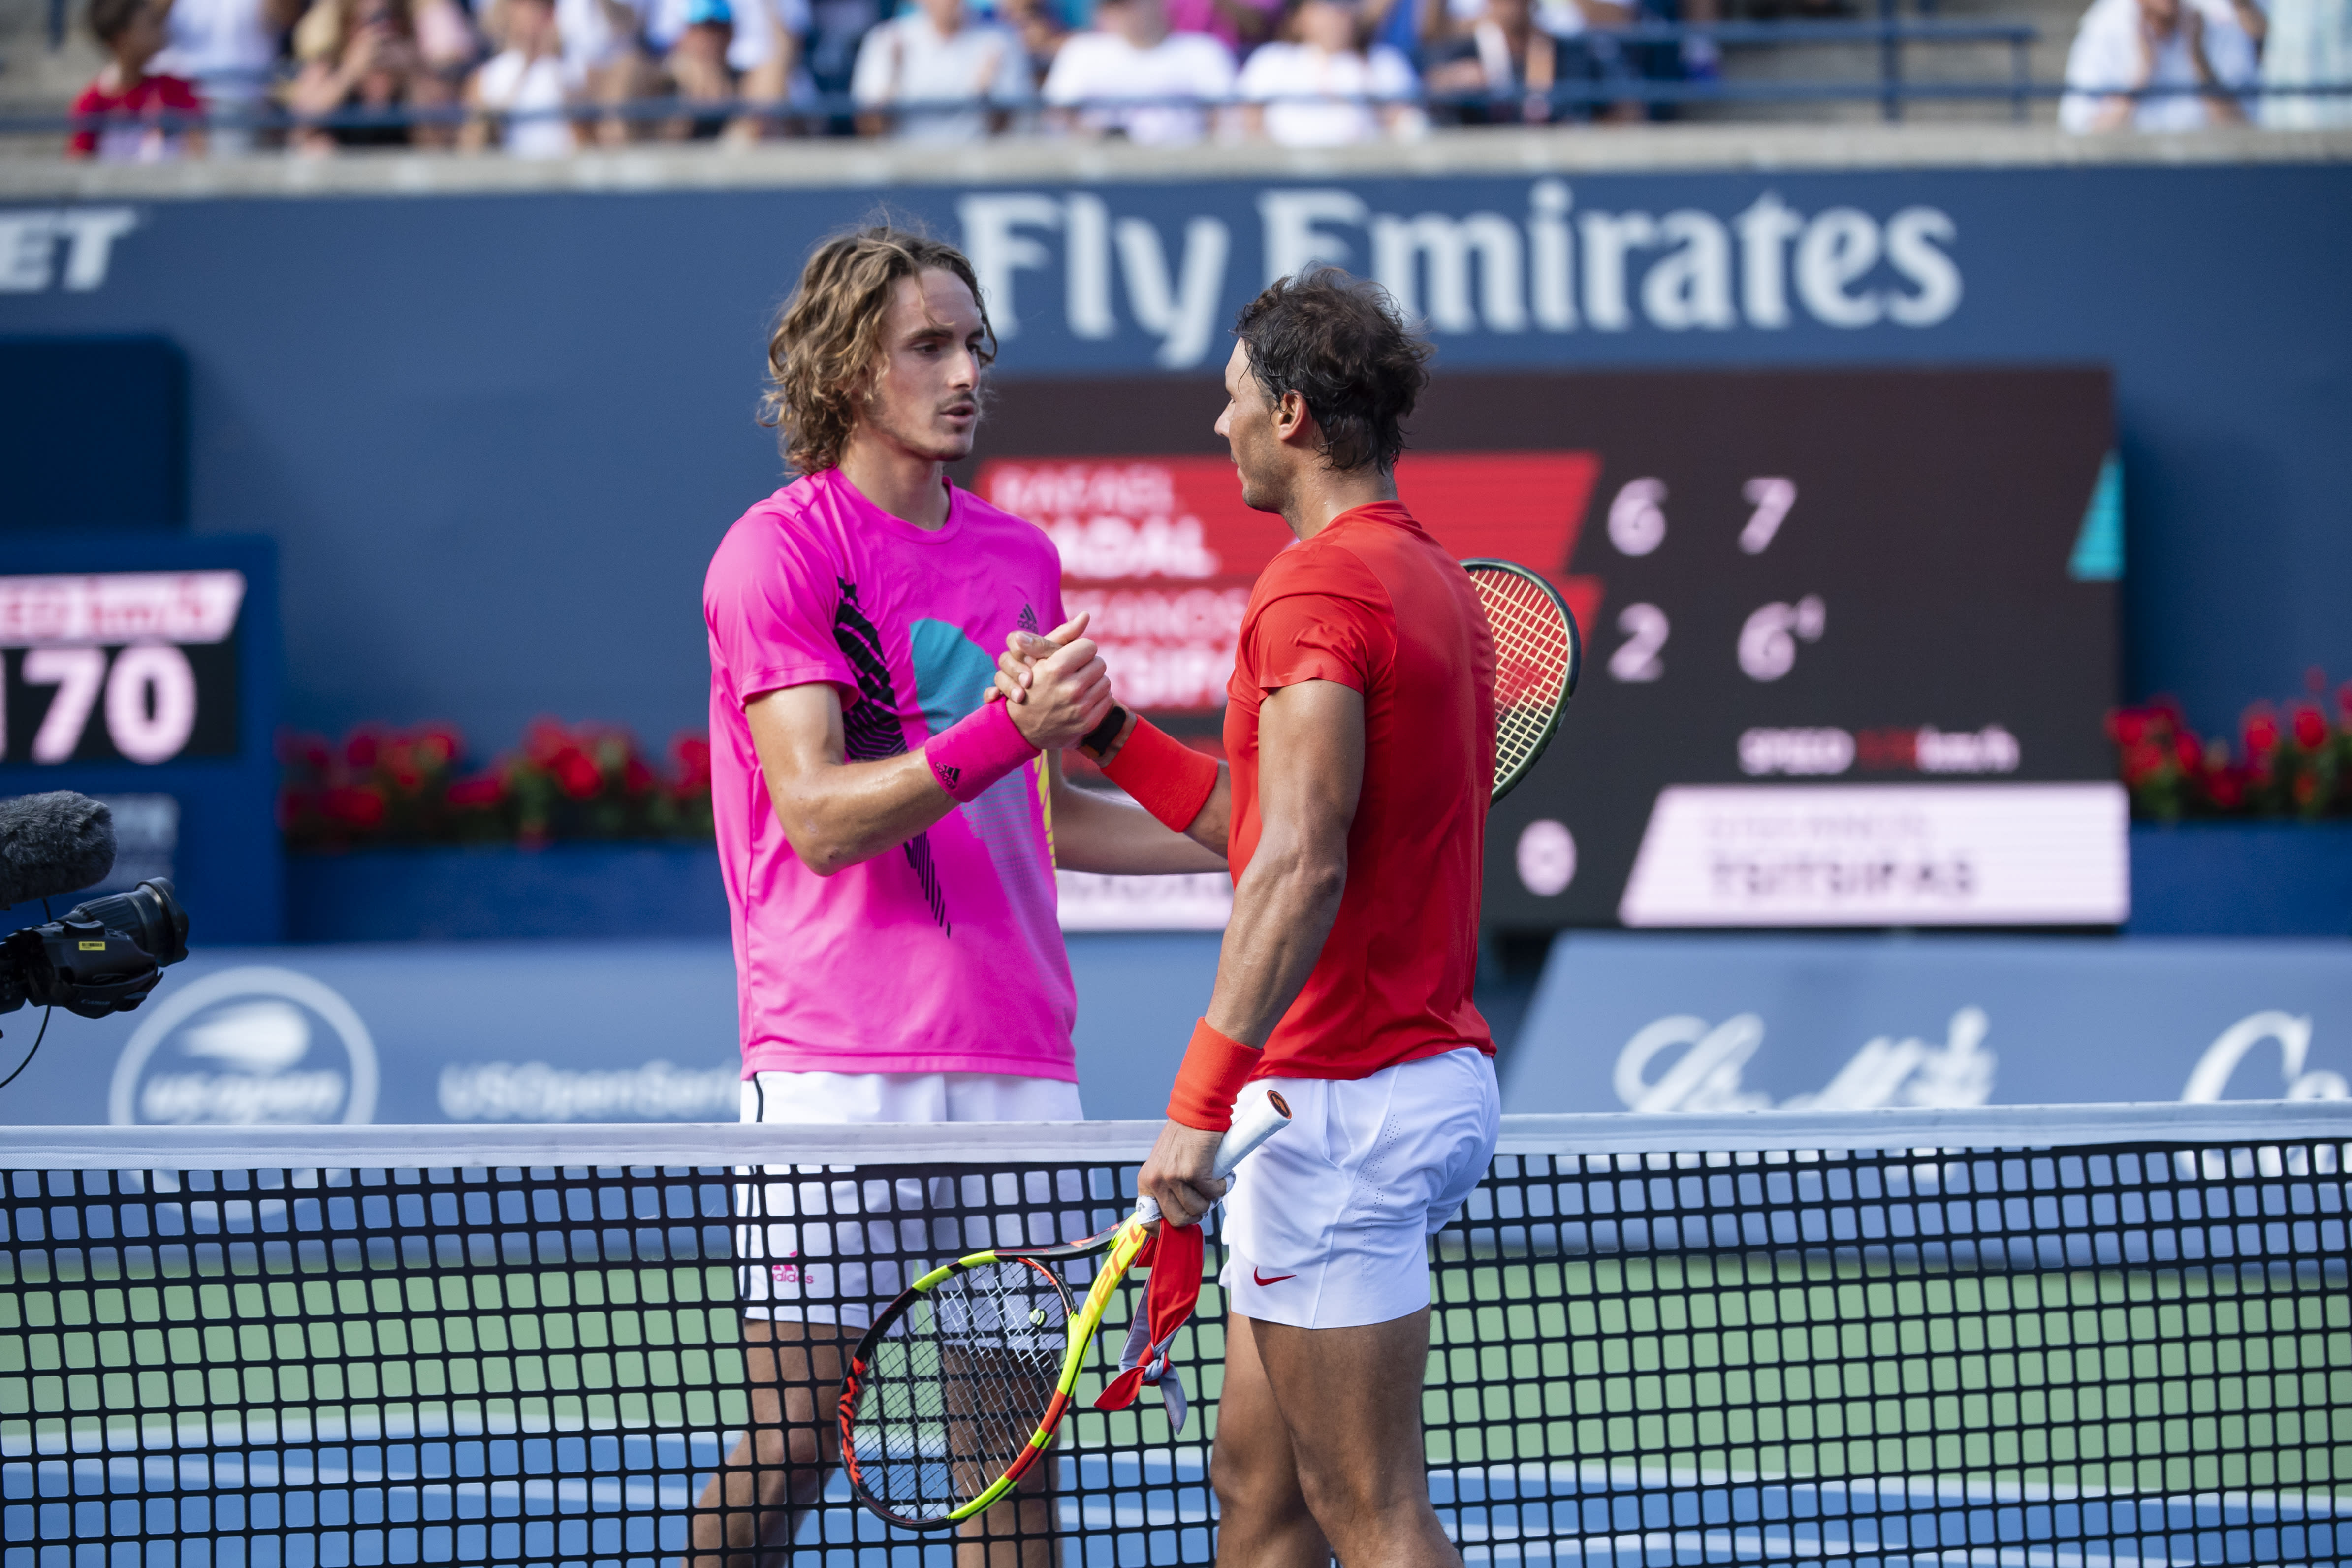 Rafael Nadal's brilliant act of sportsmanship during Rogers Cup final victory